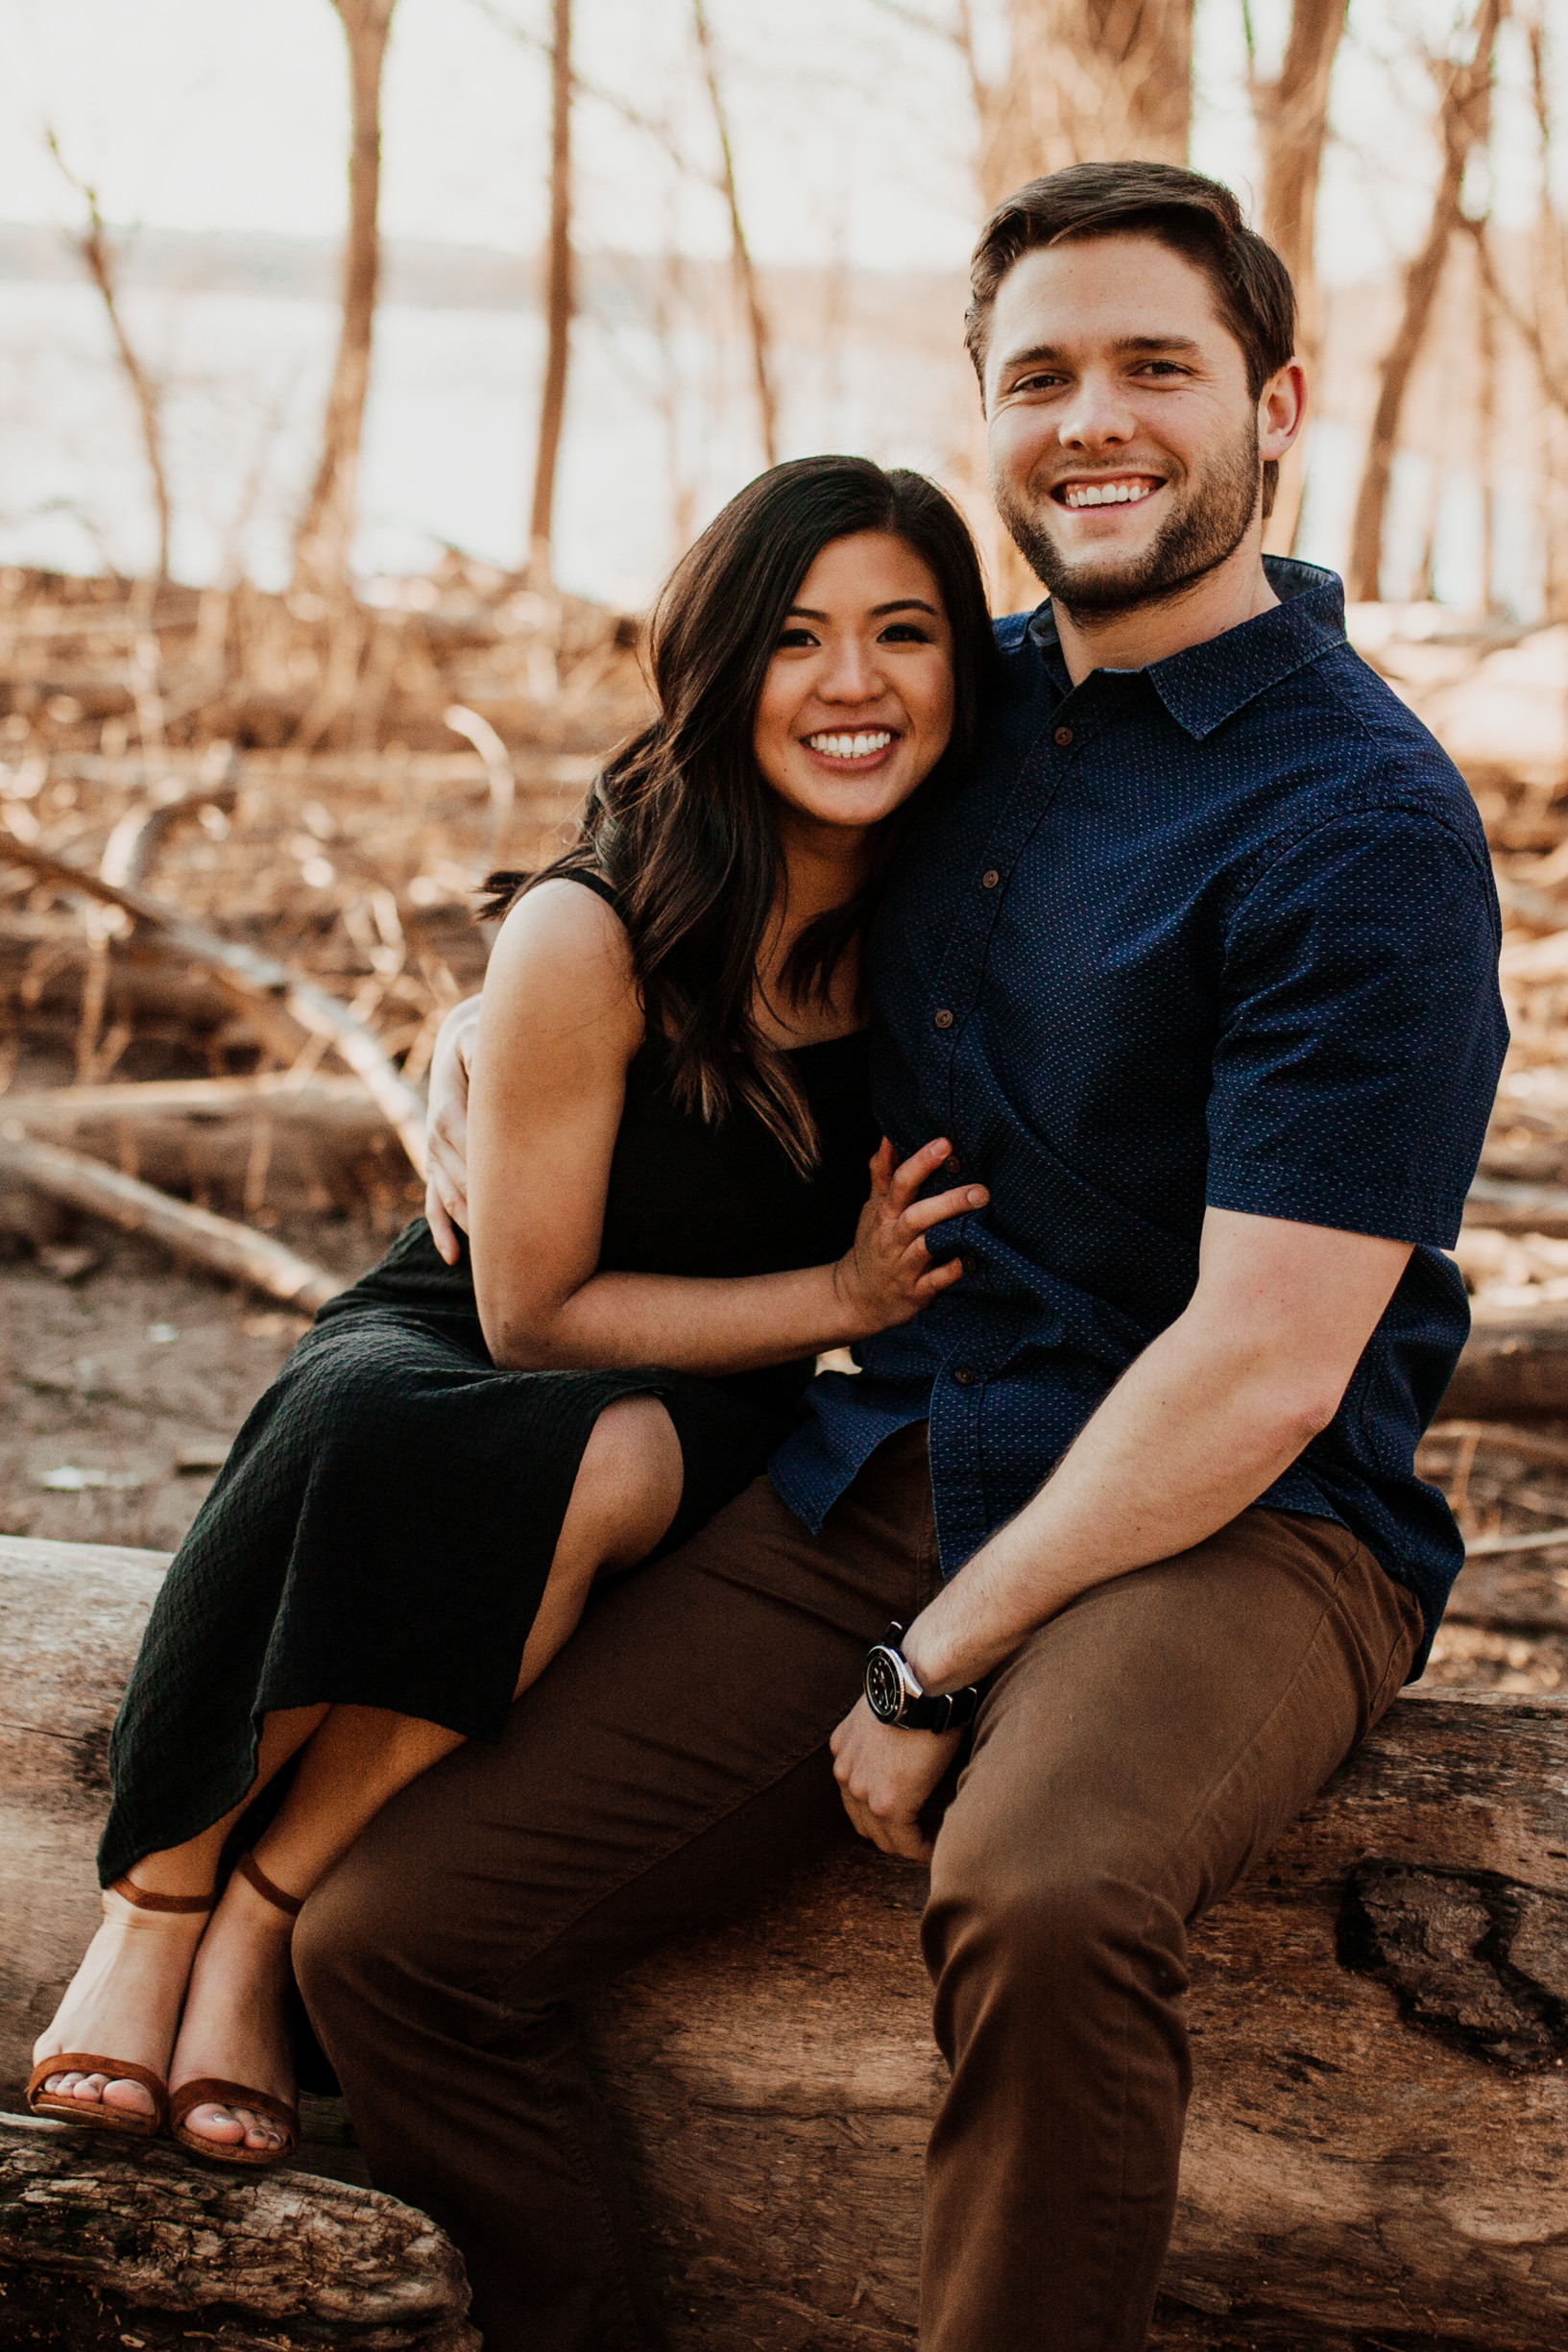 louisville-engagement-photographer-crystal-ludwick-photo-tammy-and-caleb-engagement-photography (17 of 32).jpg